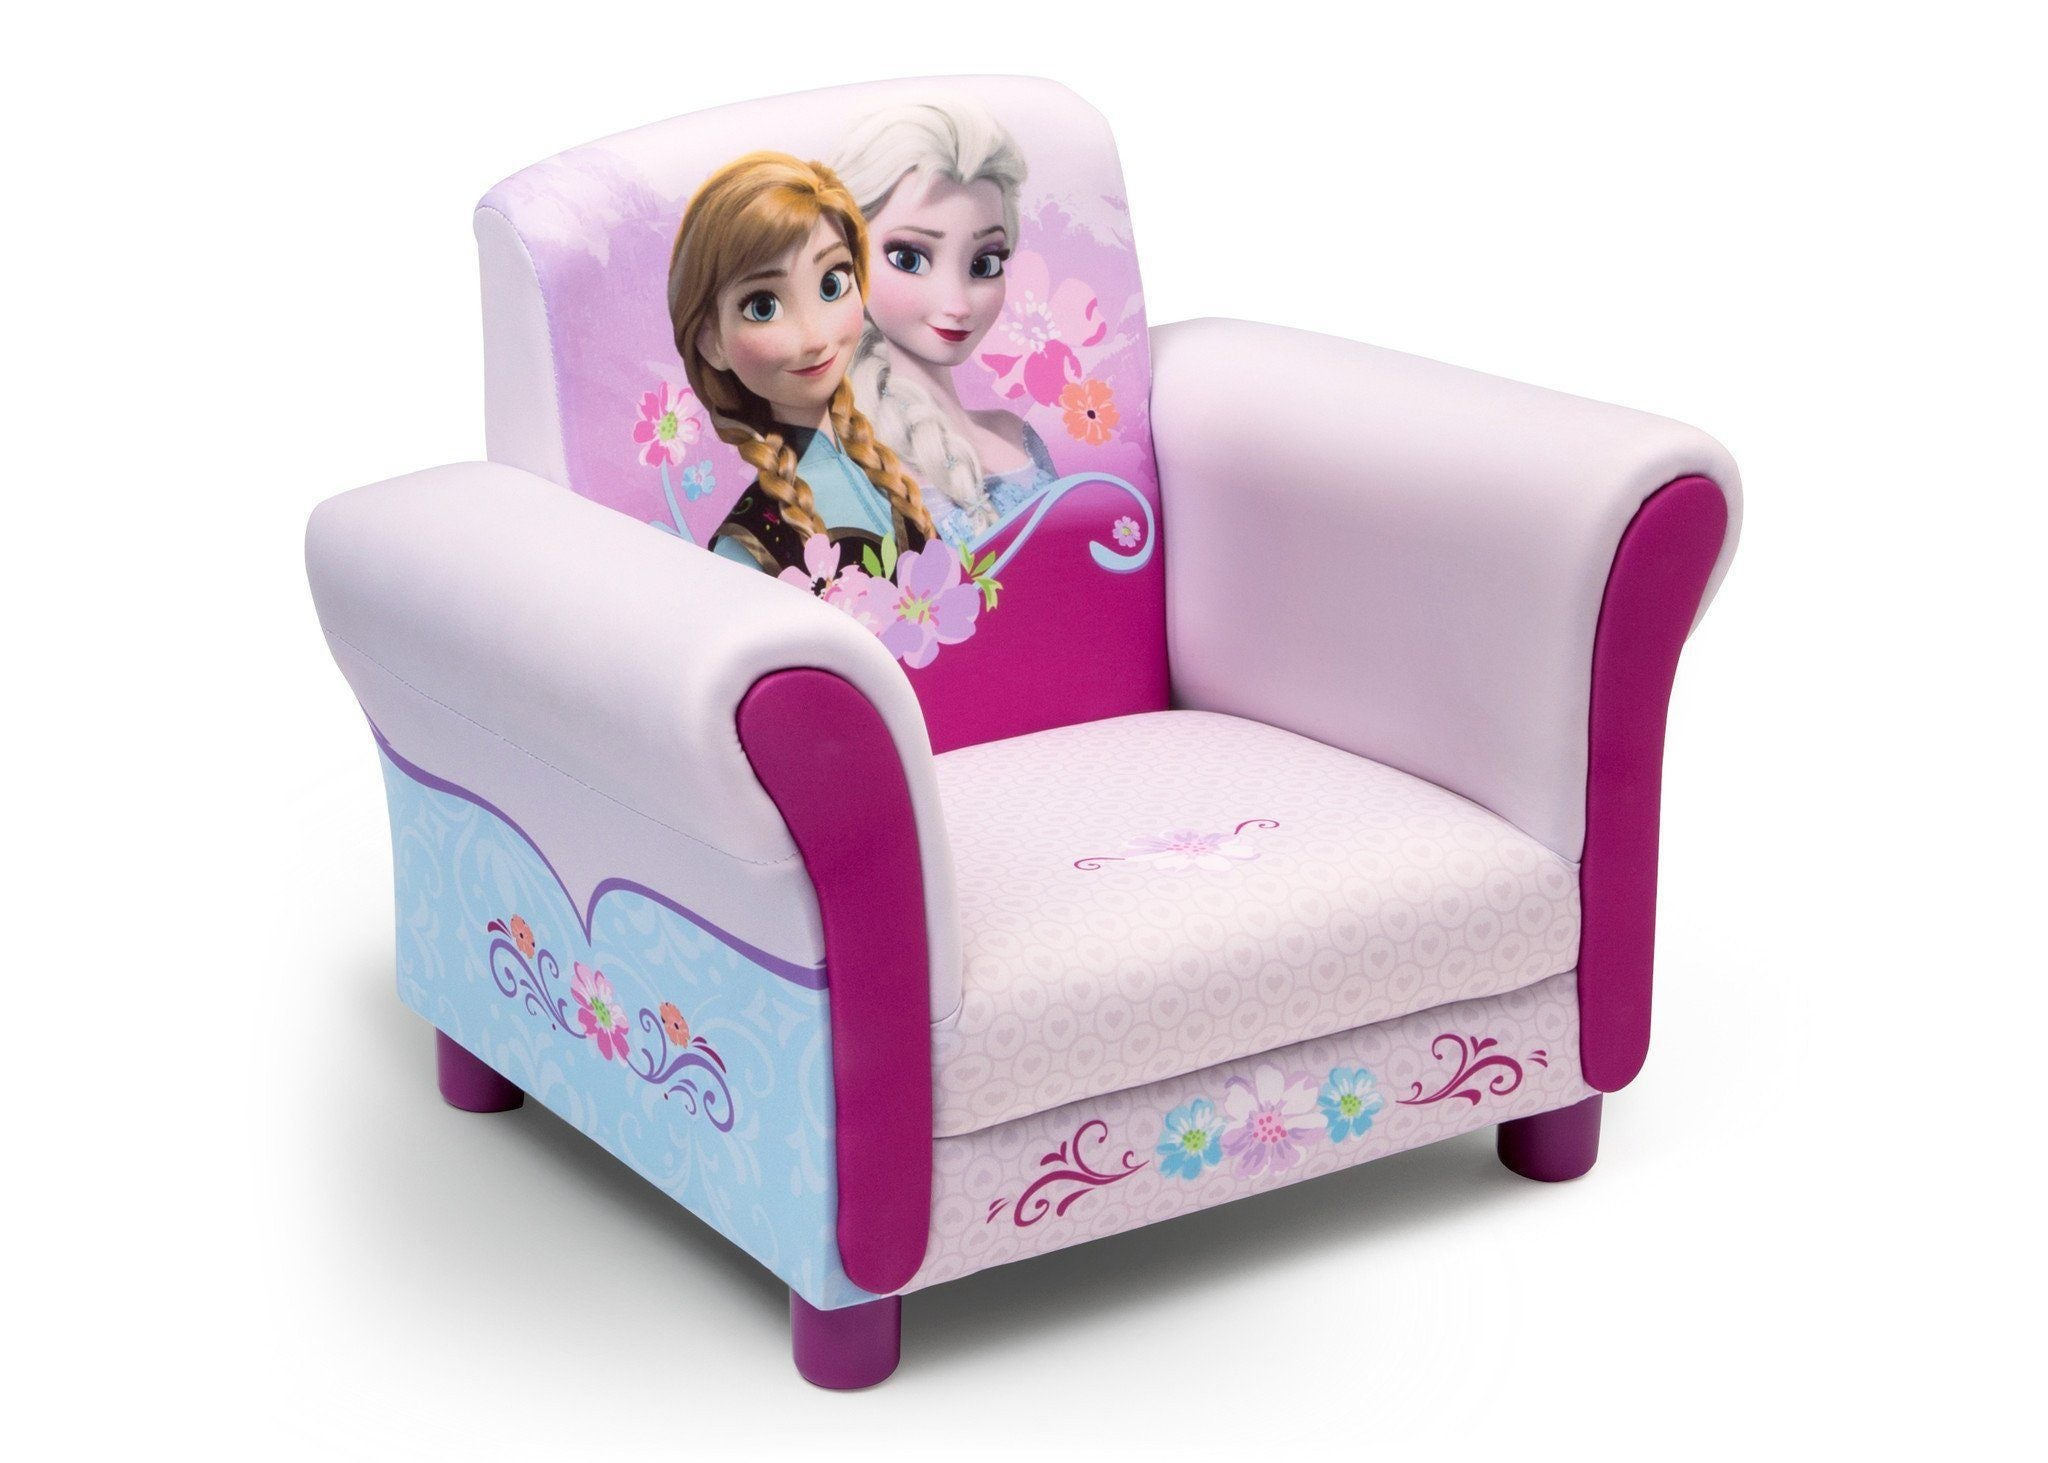 Delta Children Frozen Upholstered Chair Style-1 Right Side View Style 1 a1a